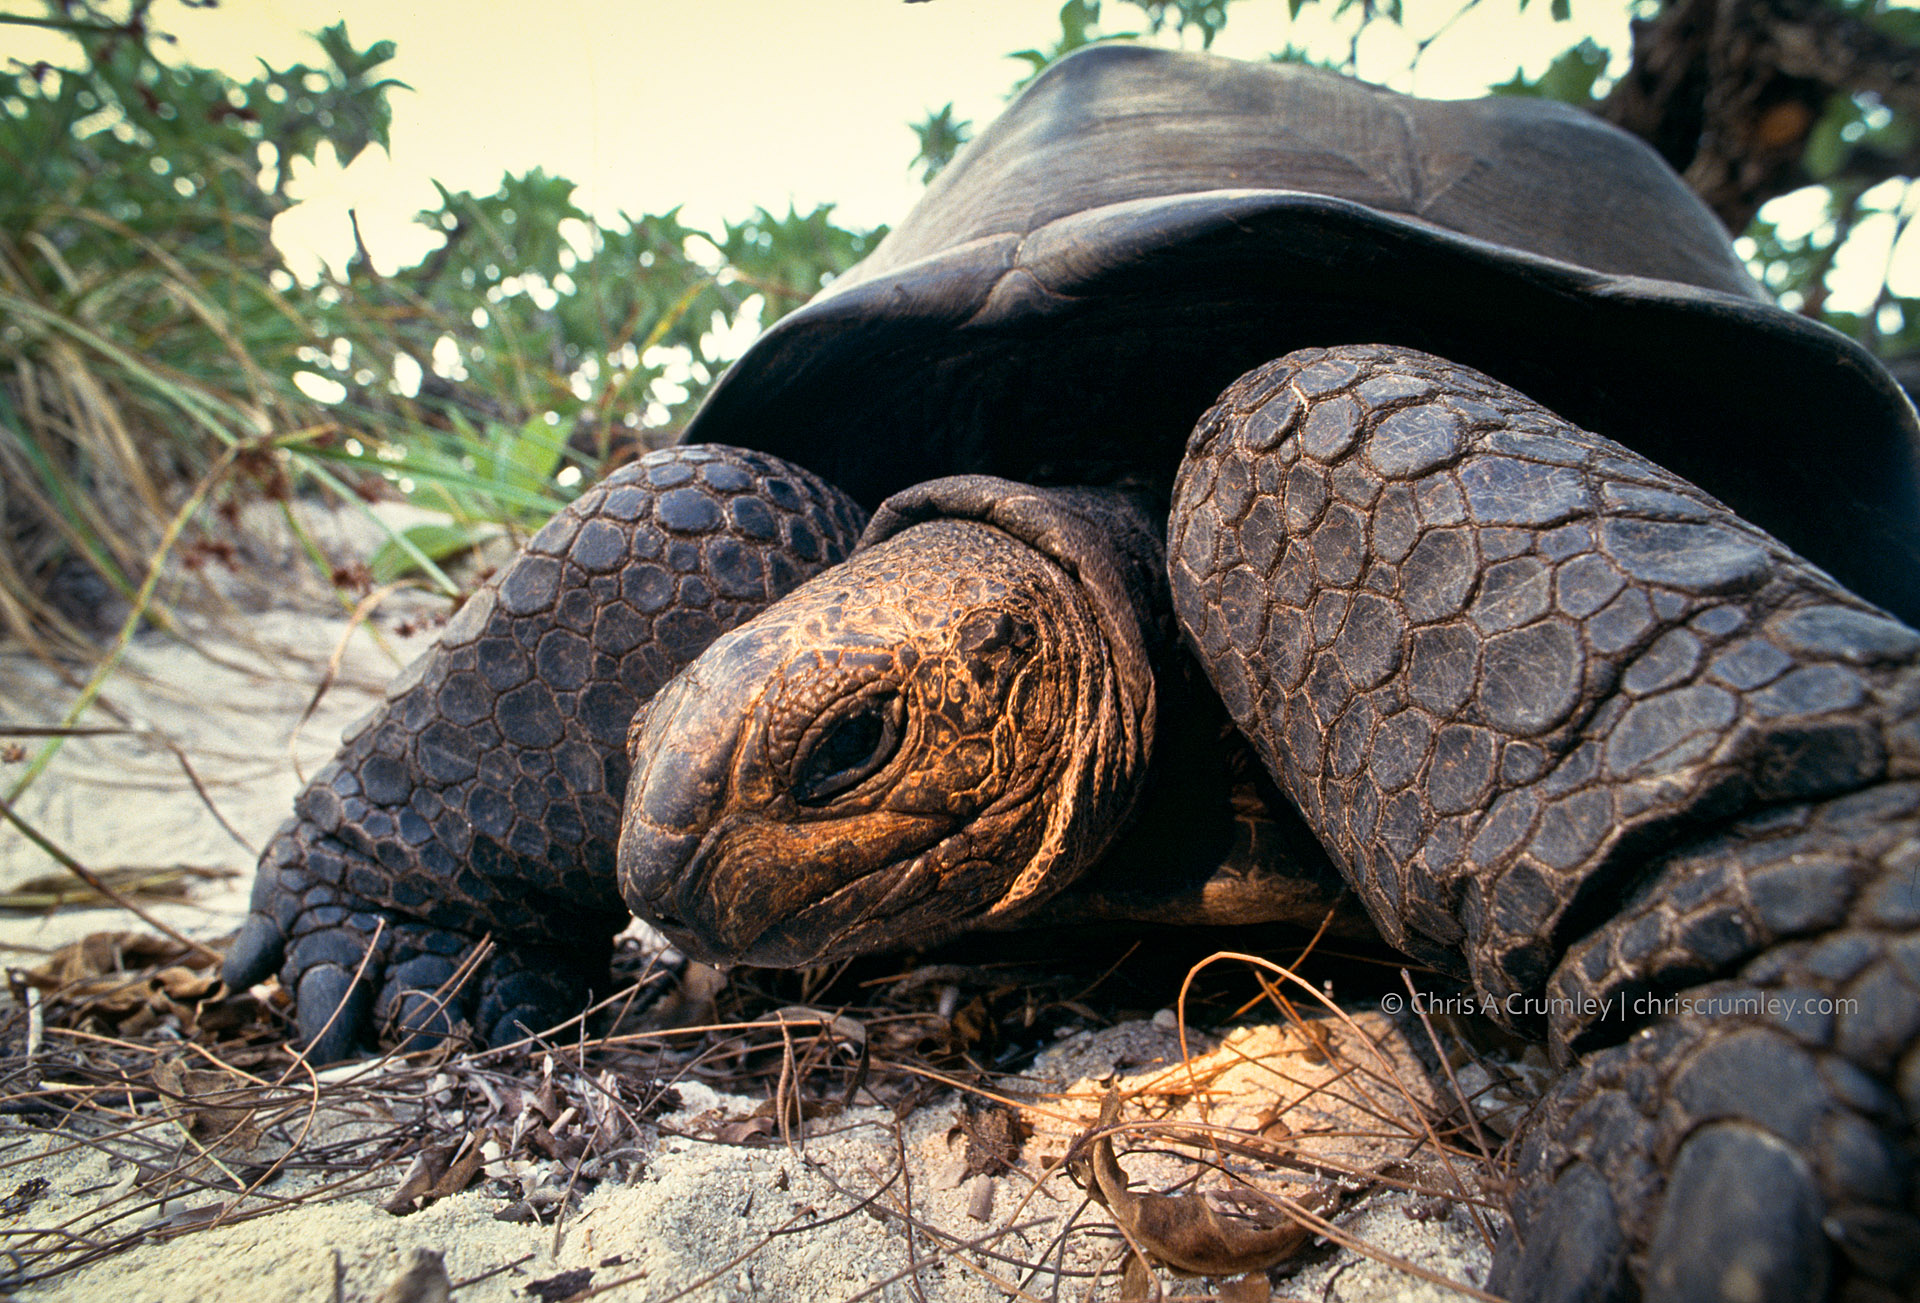 Giant Tortoise on the Aldabra Atoll in the Seychelles Islands